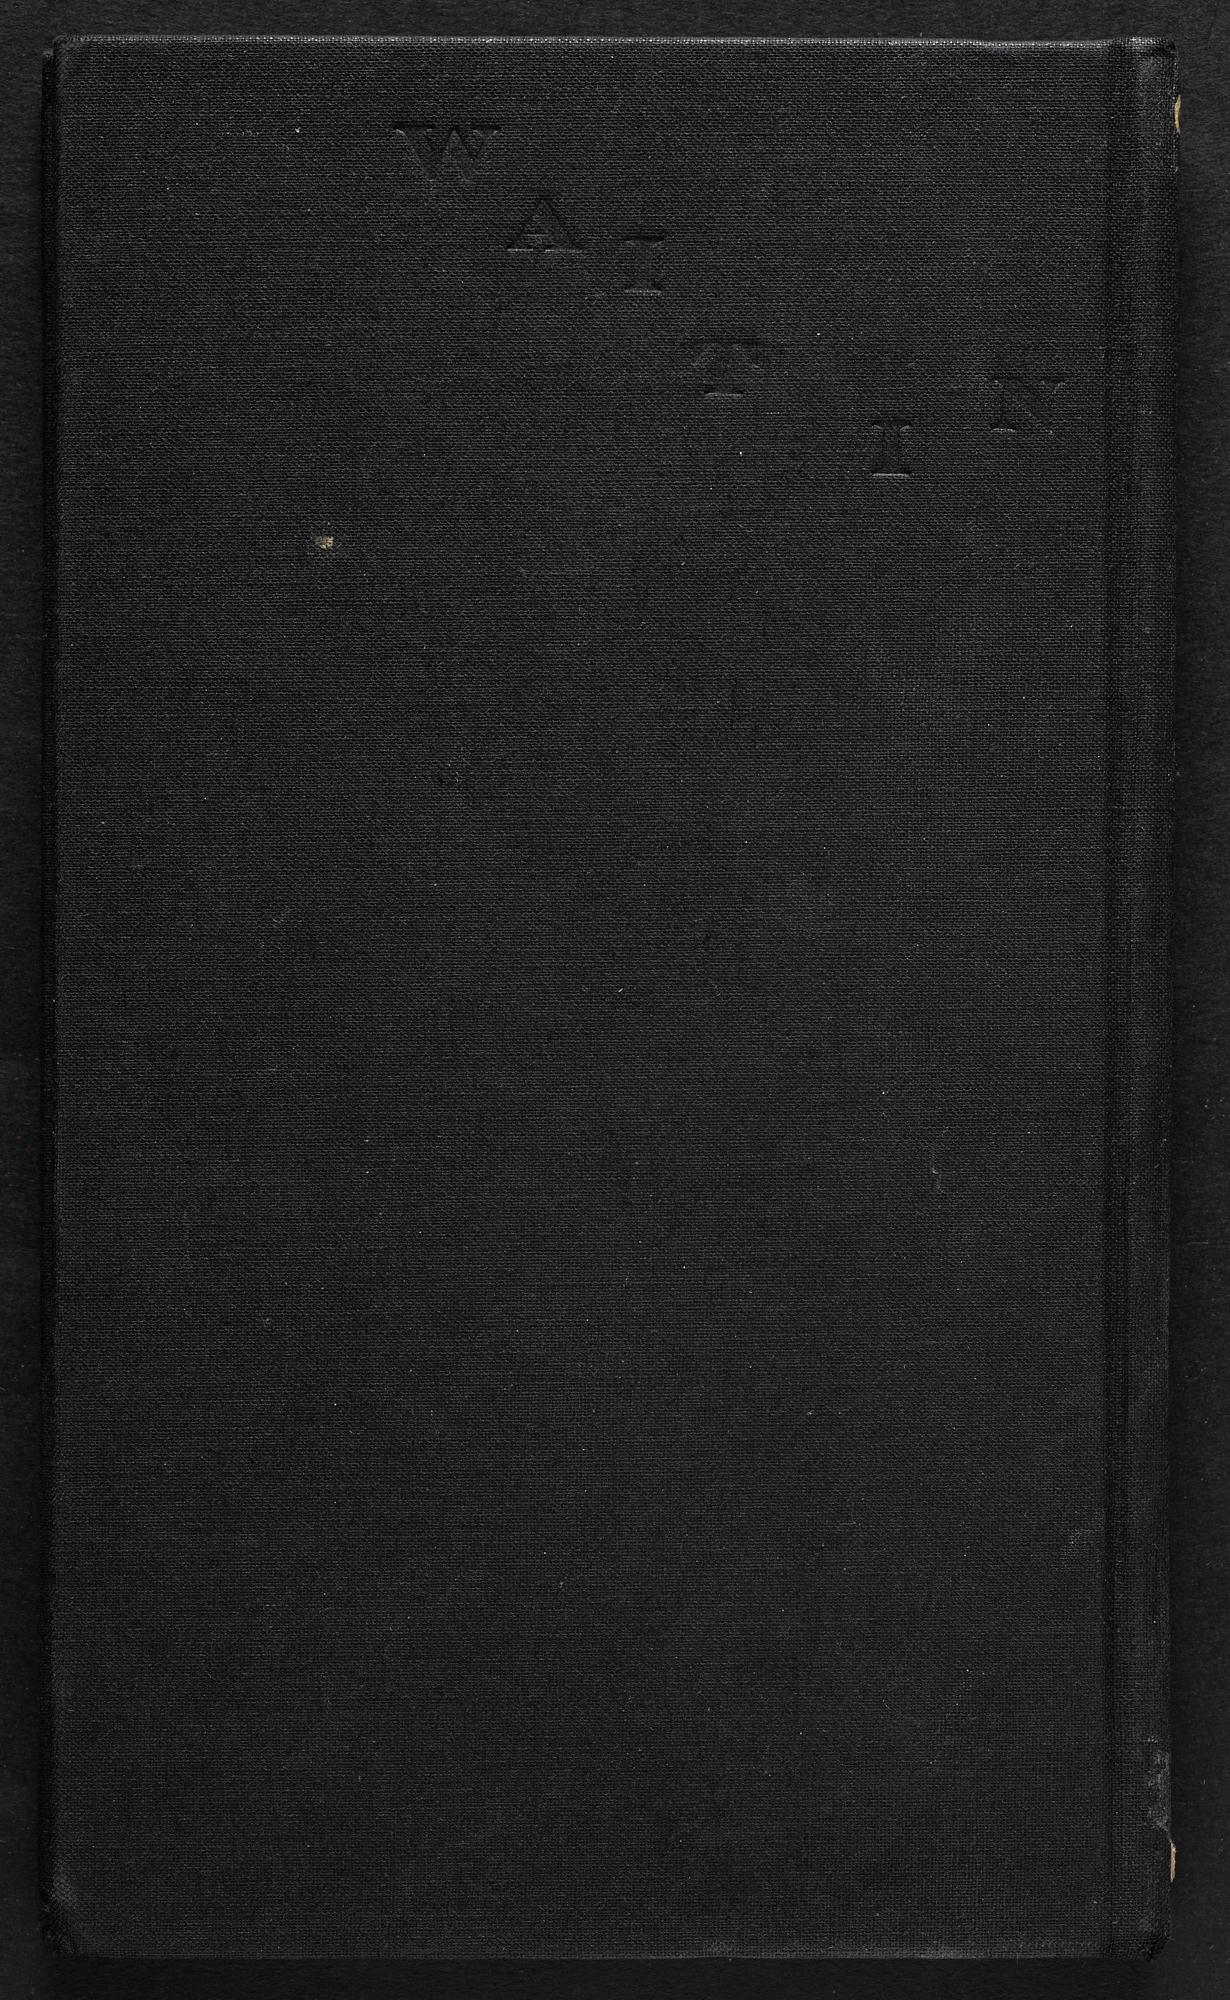 Waiting for Godot by Samuel Beckett, 1954 American edition